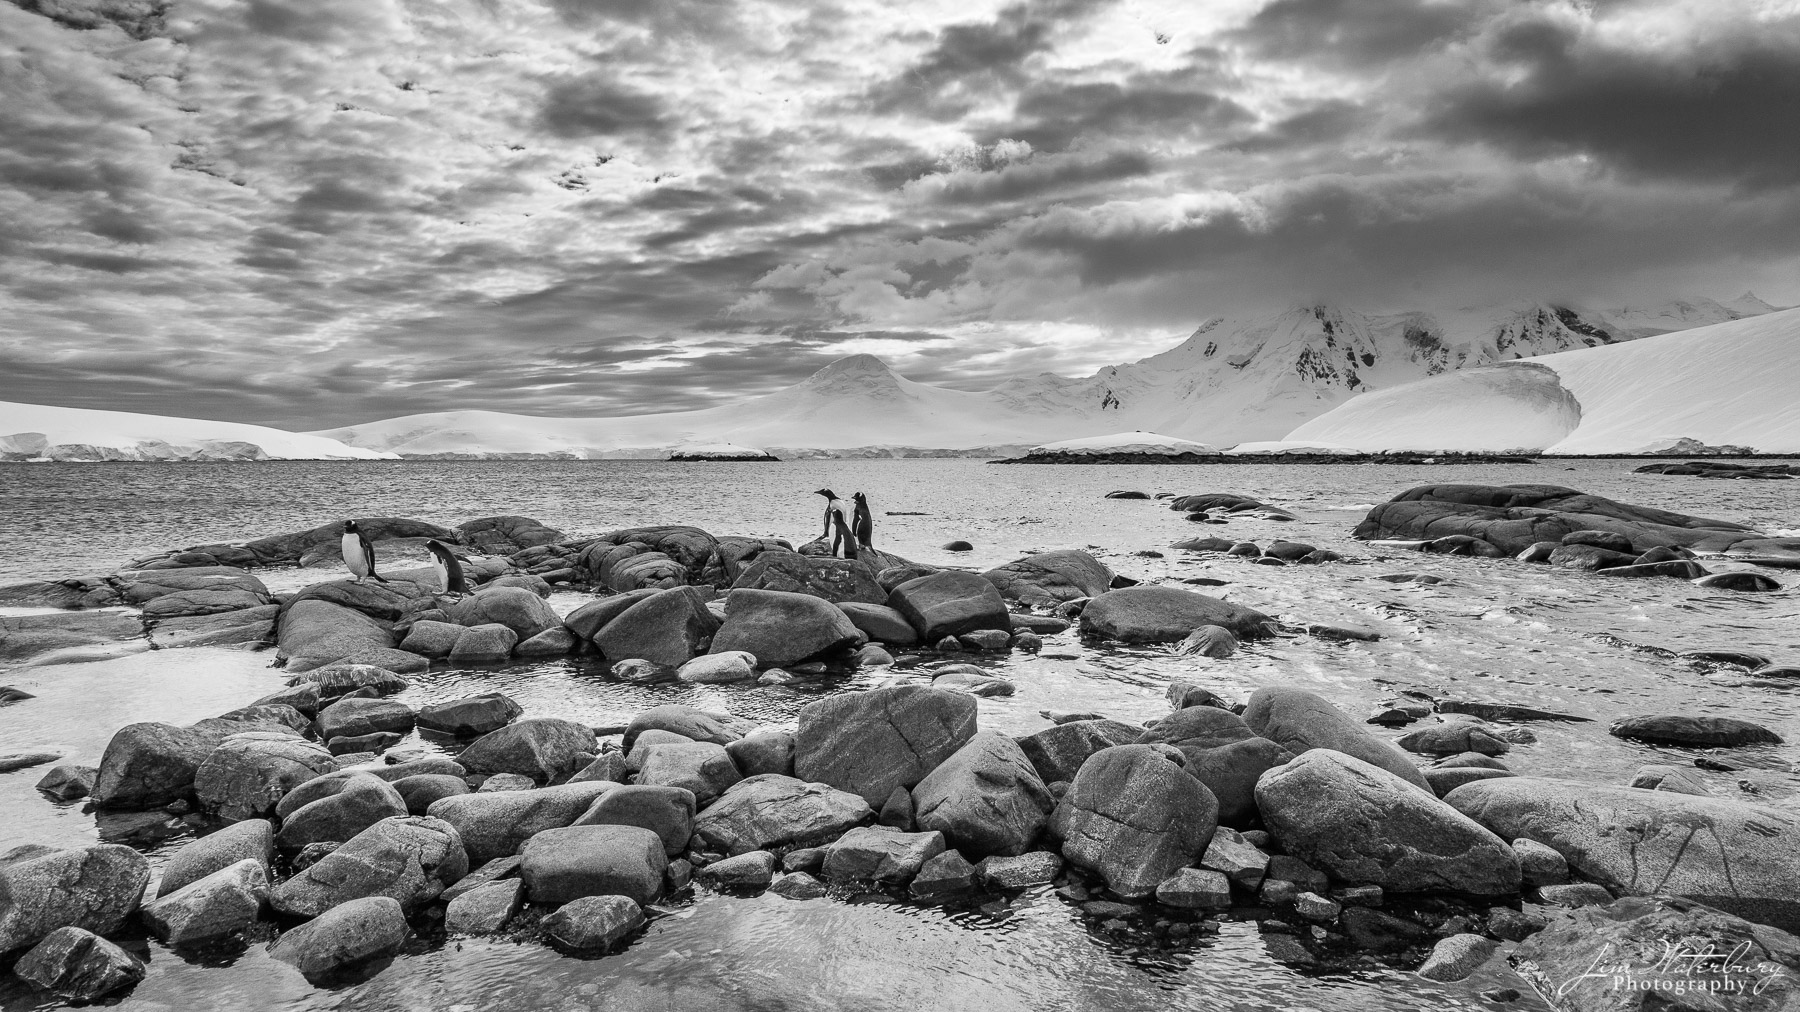 Black & white image of two penguins keeping lookout from the rocky shores of Port Lockroy, Antarctica.